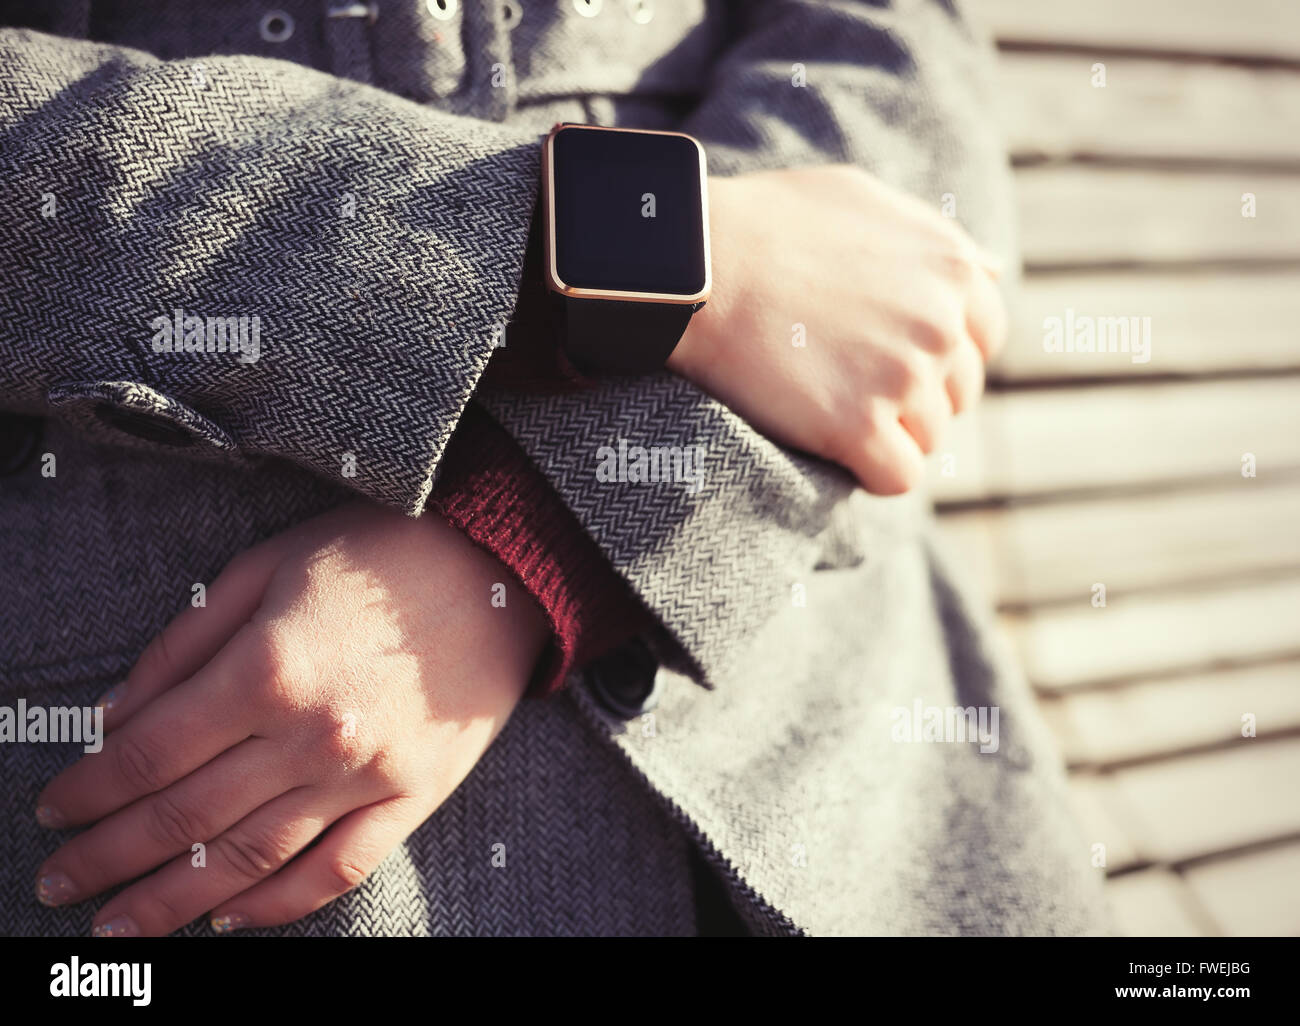 Woman in grey coat wearing stylish black smart wrist watch. This person is always connected to social media and - Stock Image